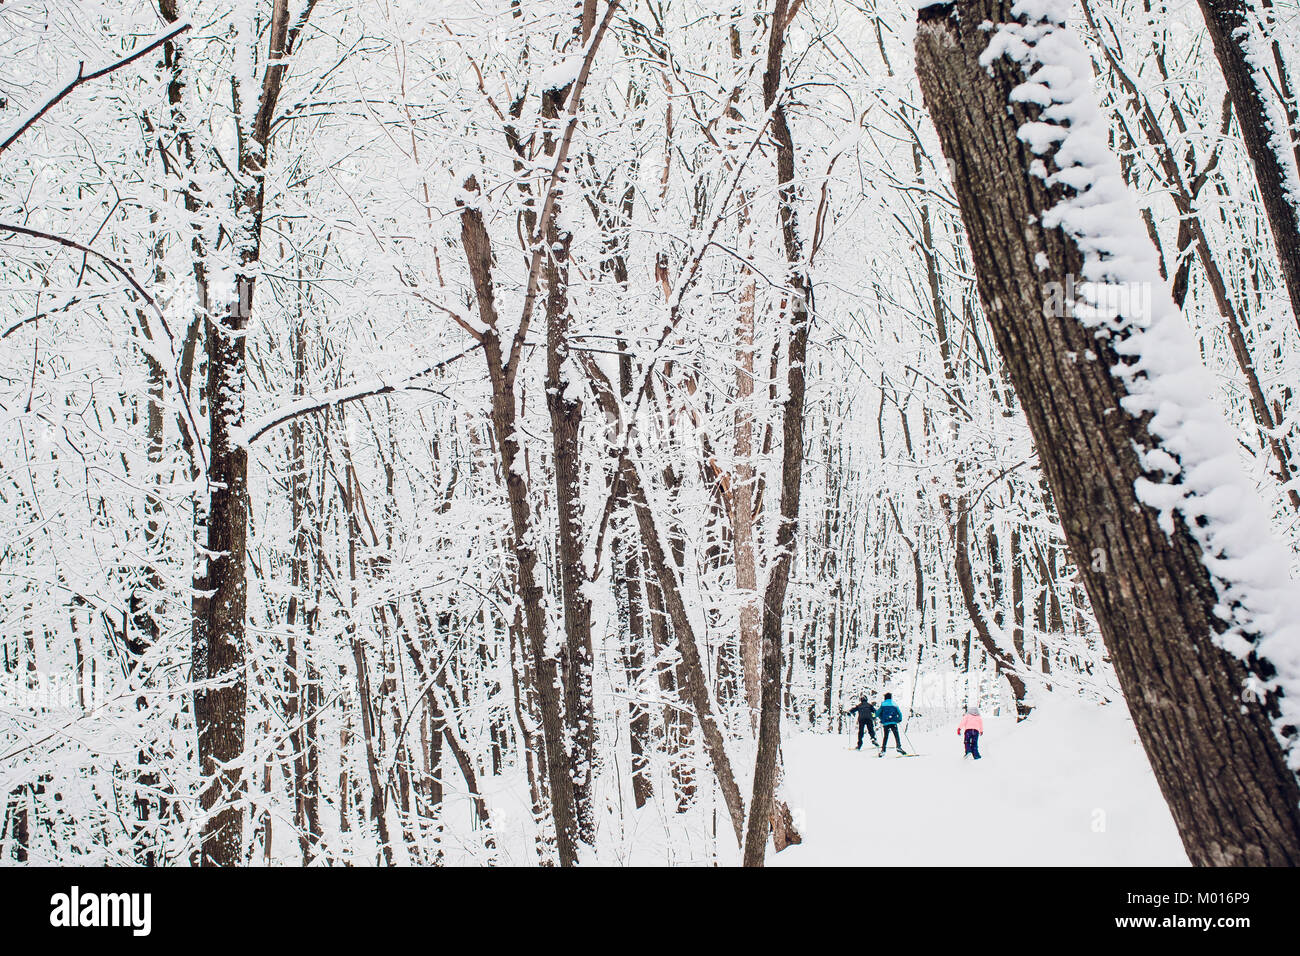 Nordic skier on the white winter forest covered by snow - concept photo for winter olympic game in pyeongchang in Stock Photo